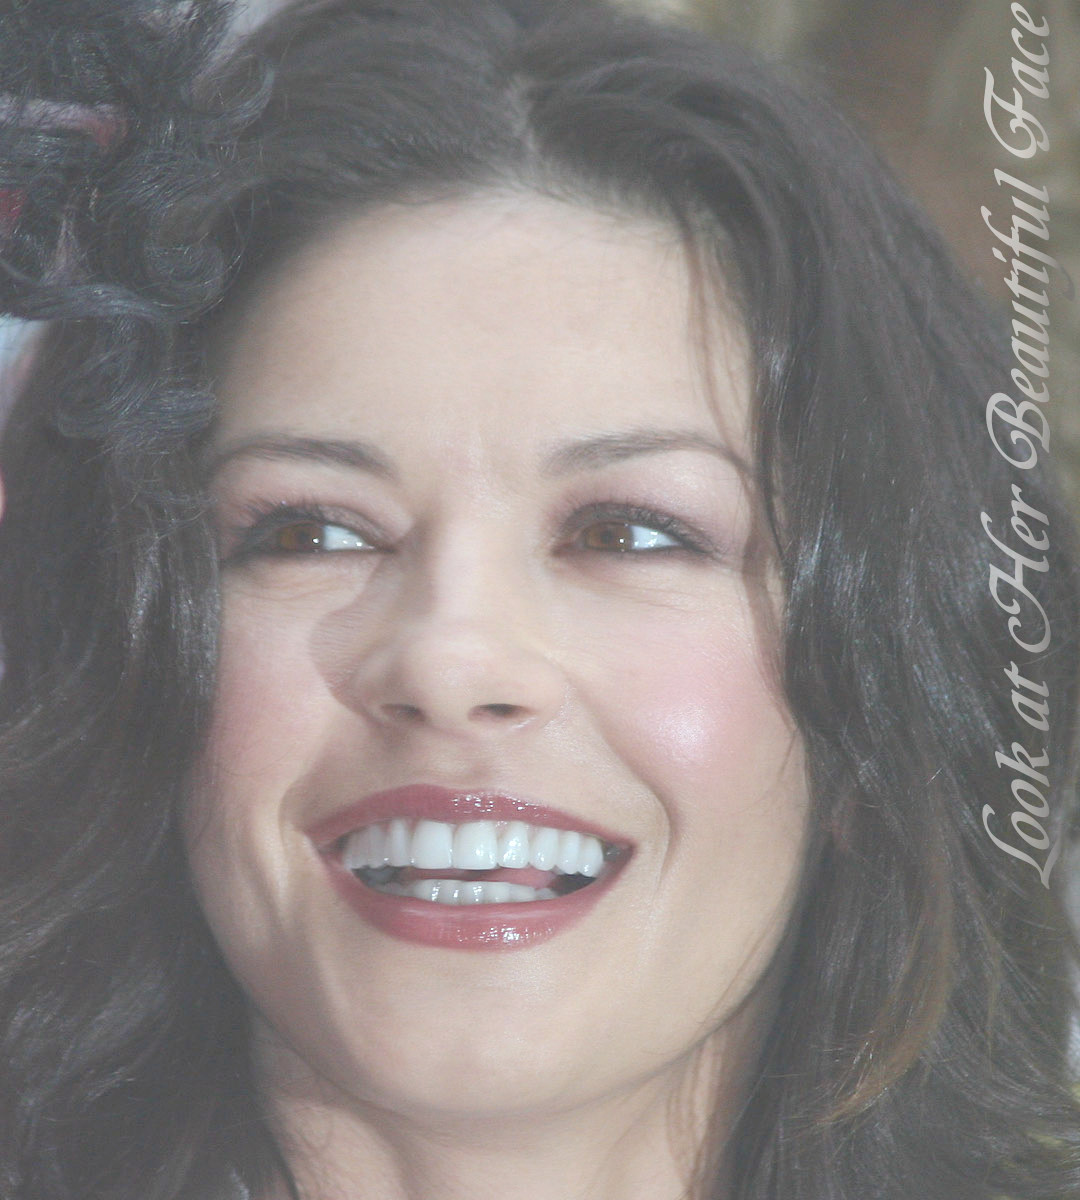 http://3.bp.blogspot.com/__UQSIjH59iA/TB9Bp_TqupI/AAAAAAAAEGE/9HiKt-GuXjw/s1600/Catherine_Zeta_Jones_Beautiful_Face_1080x1200_Pixels.jpg